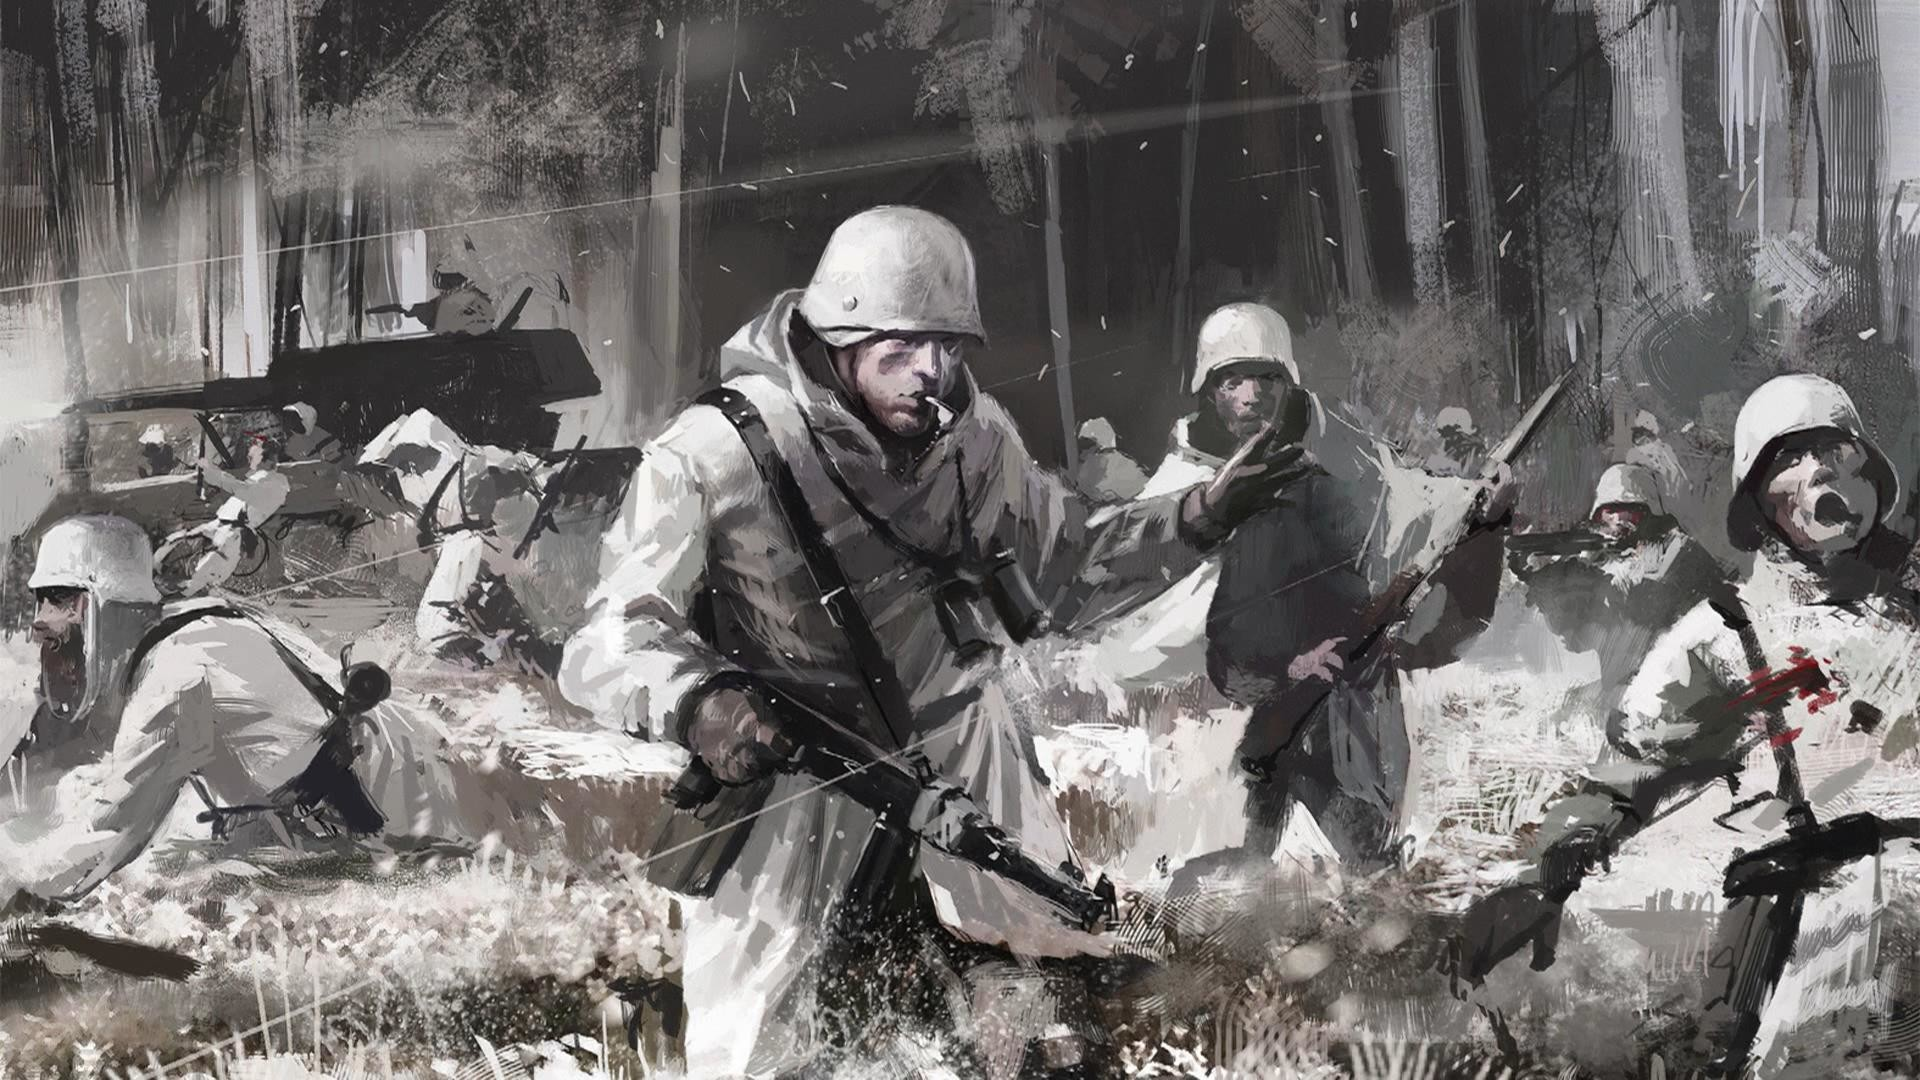 Ww2 wallpaper images 71 images - World war 2 desktop wallpaper ...